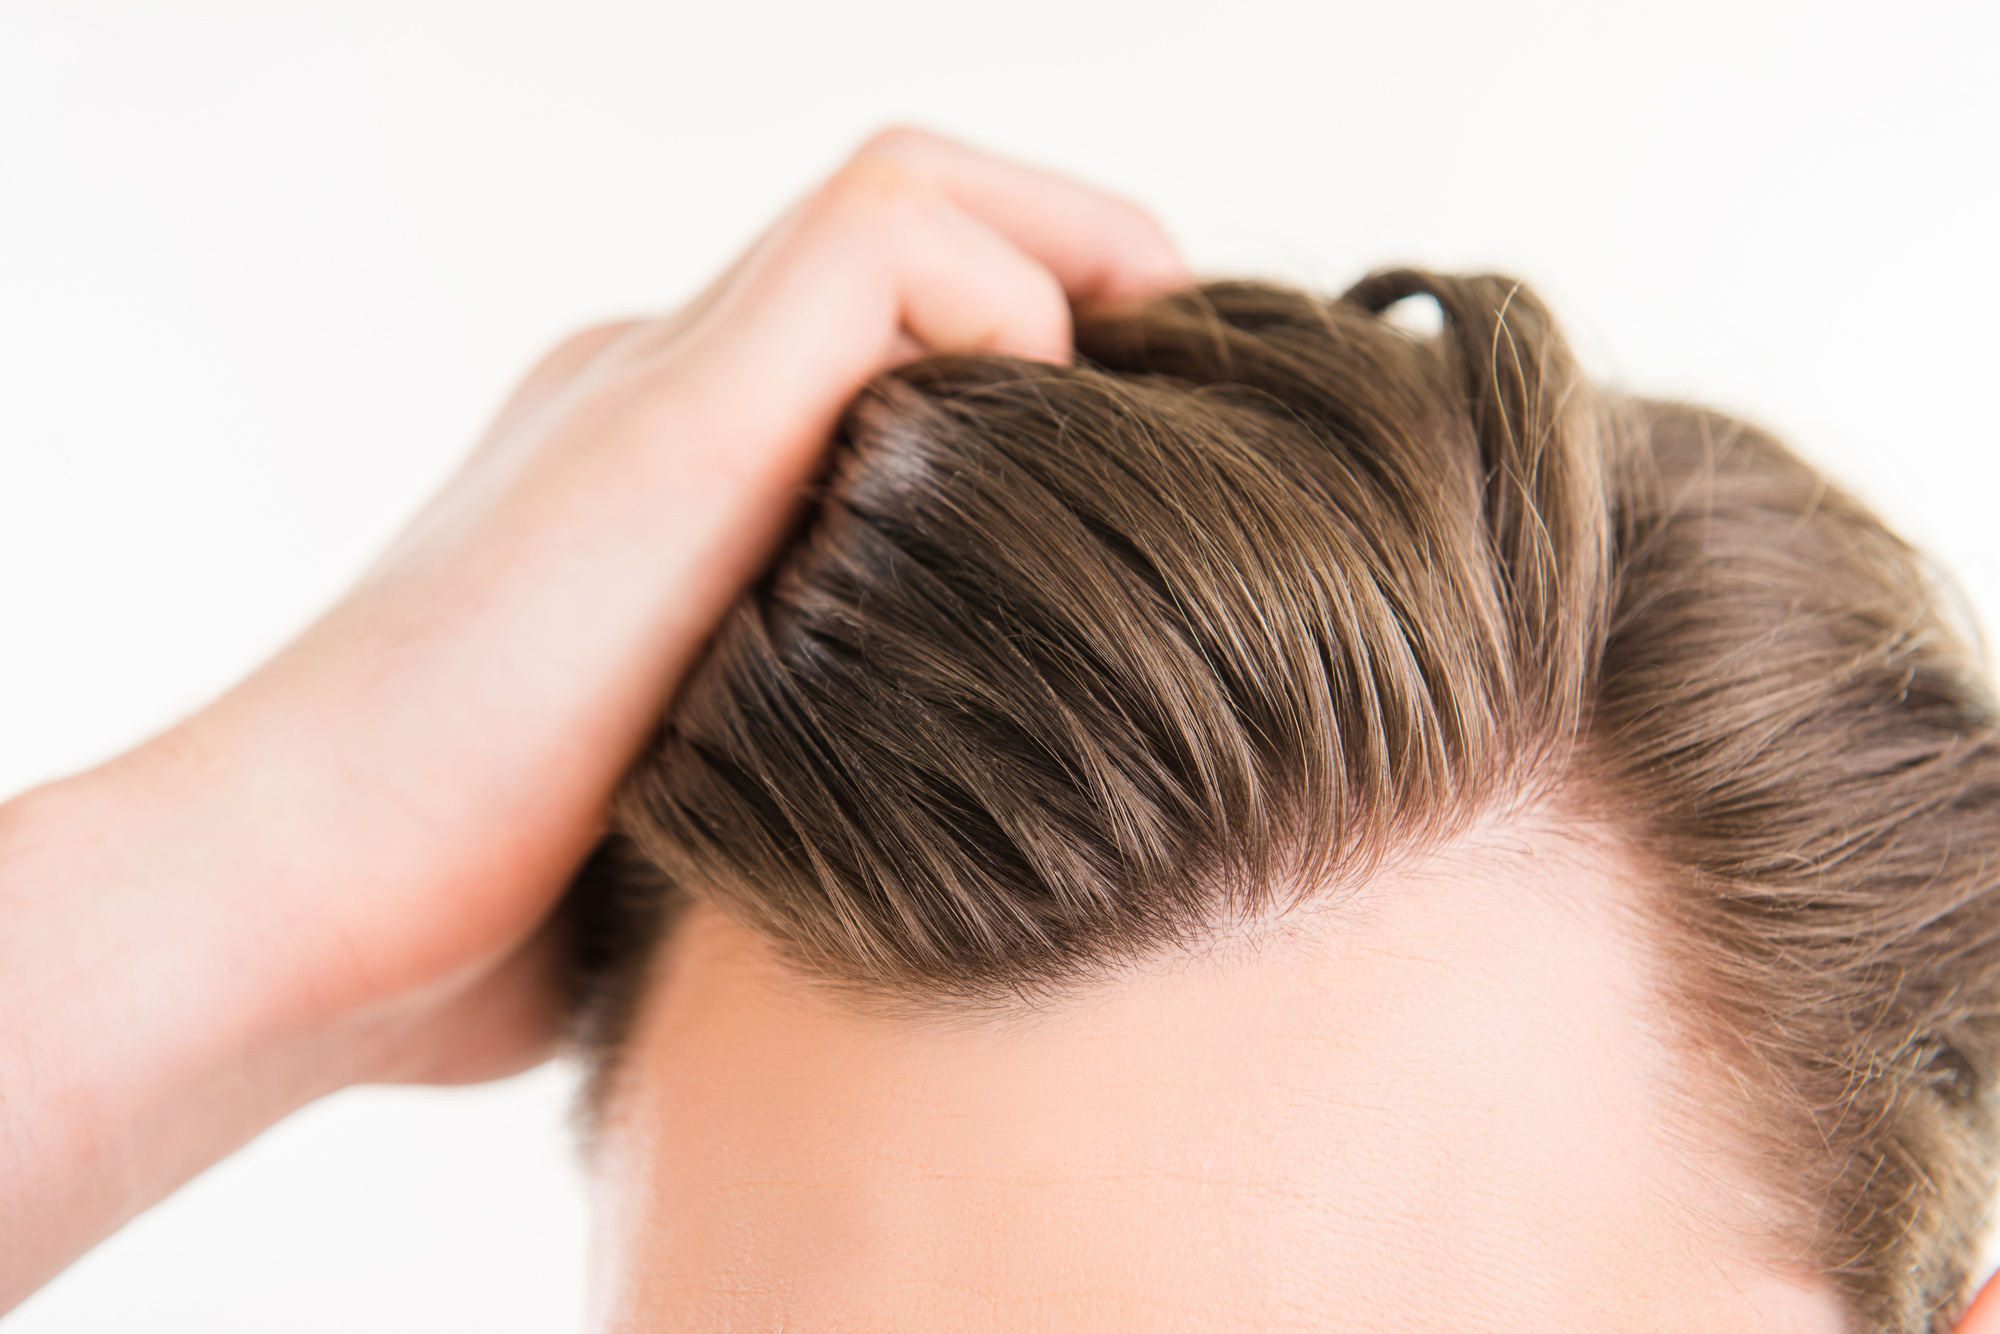 How Does Hair Restoration Work?